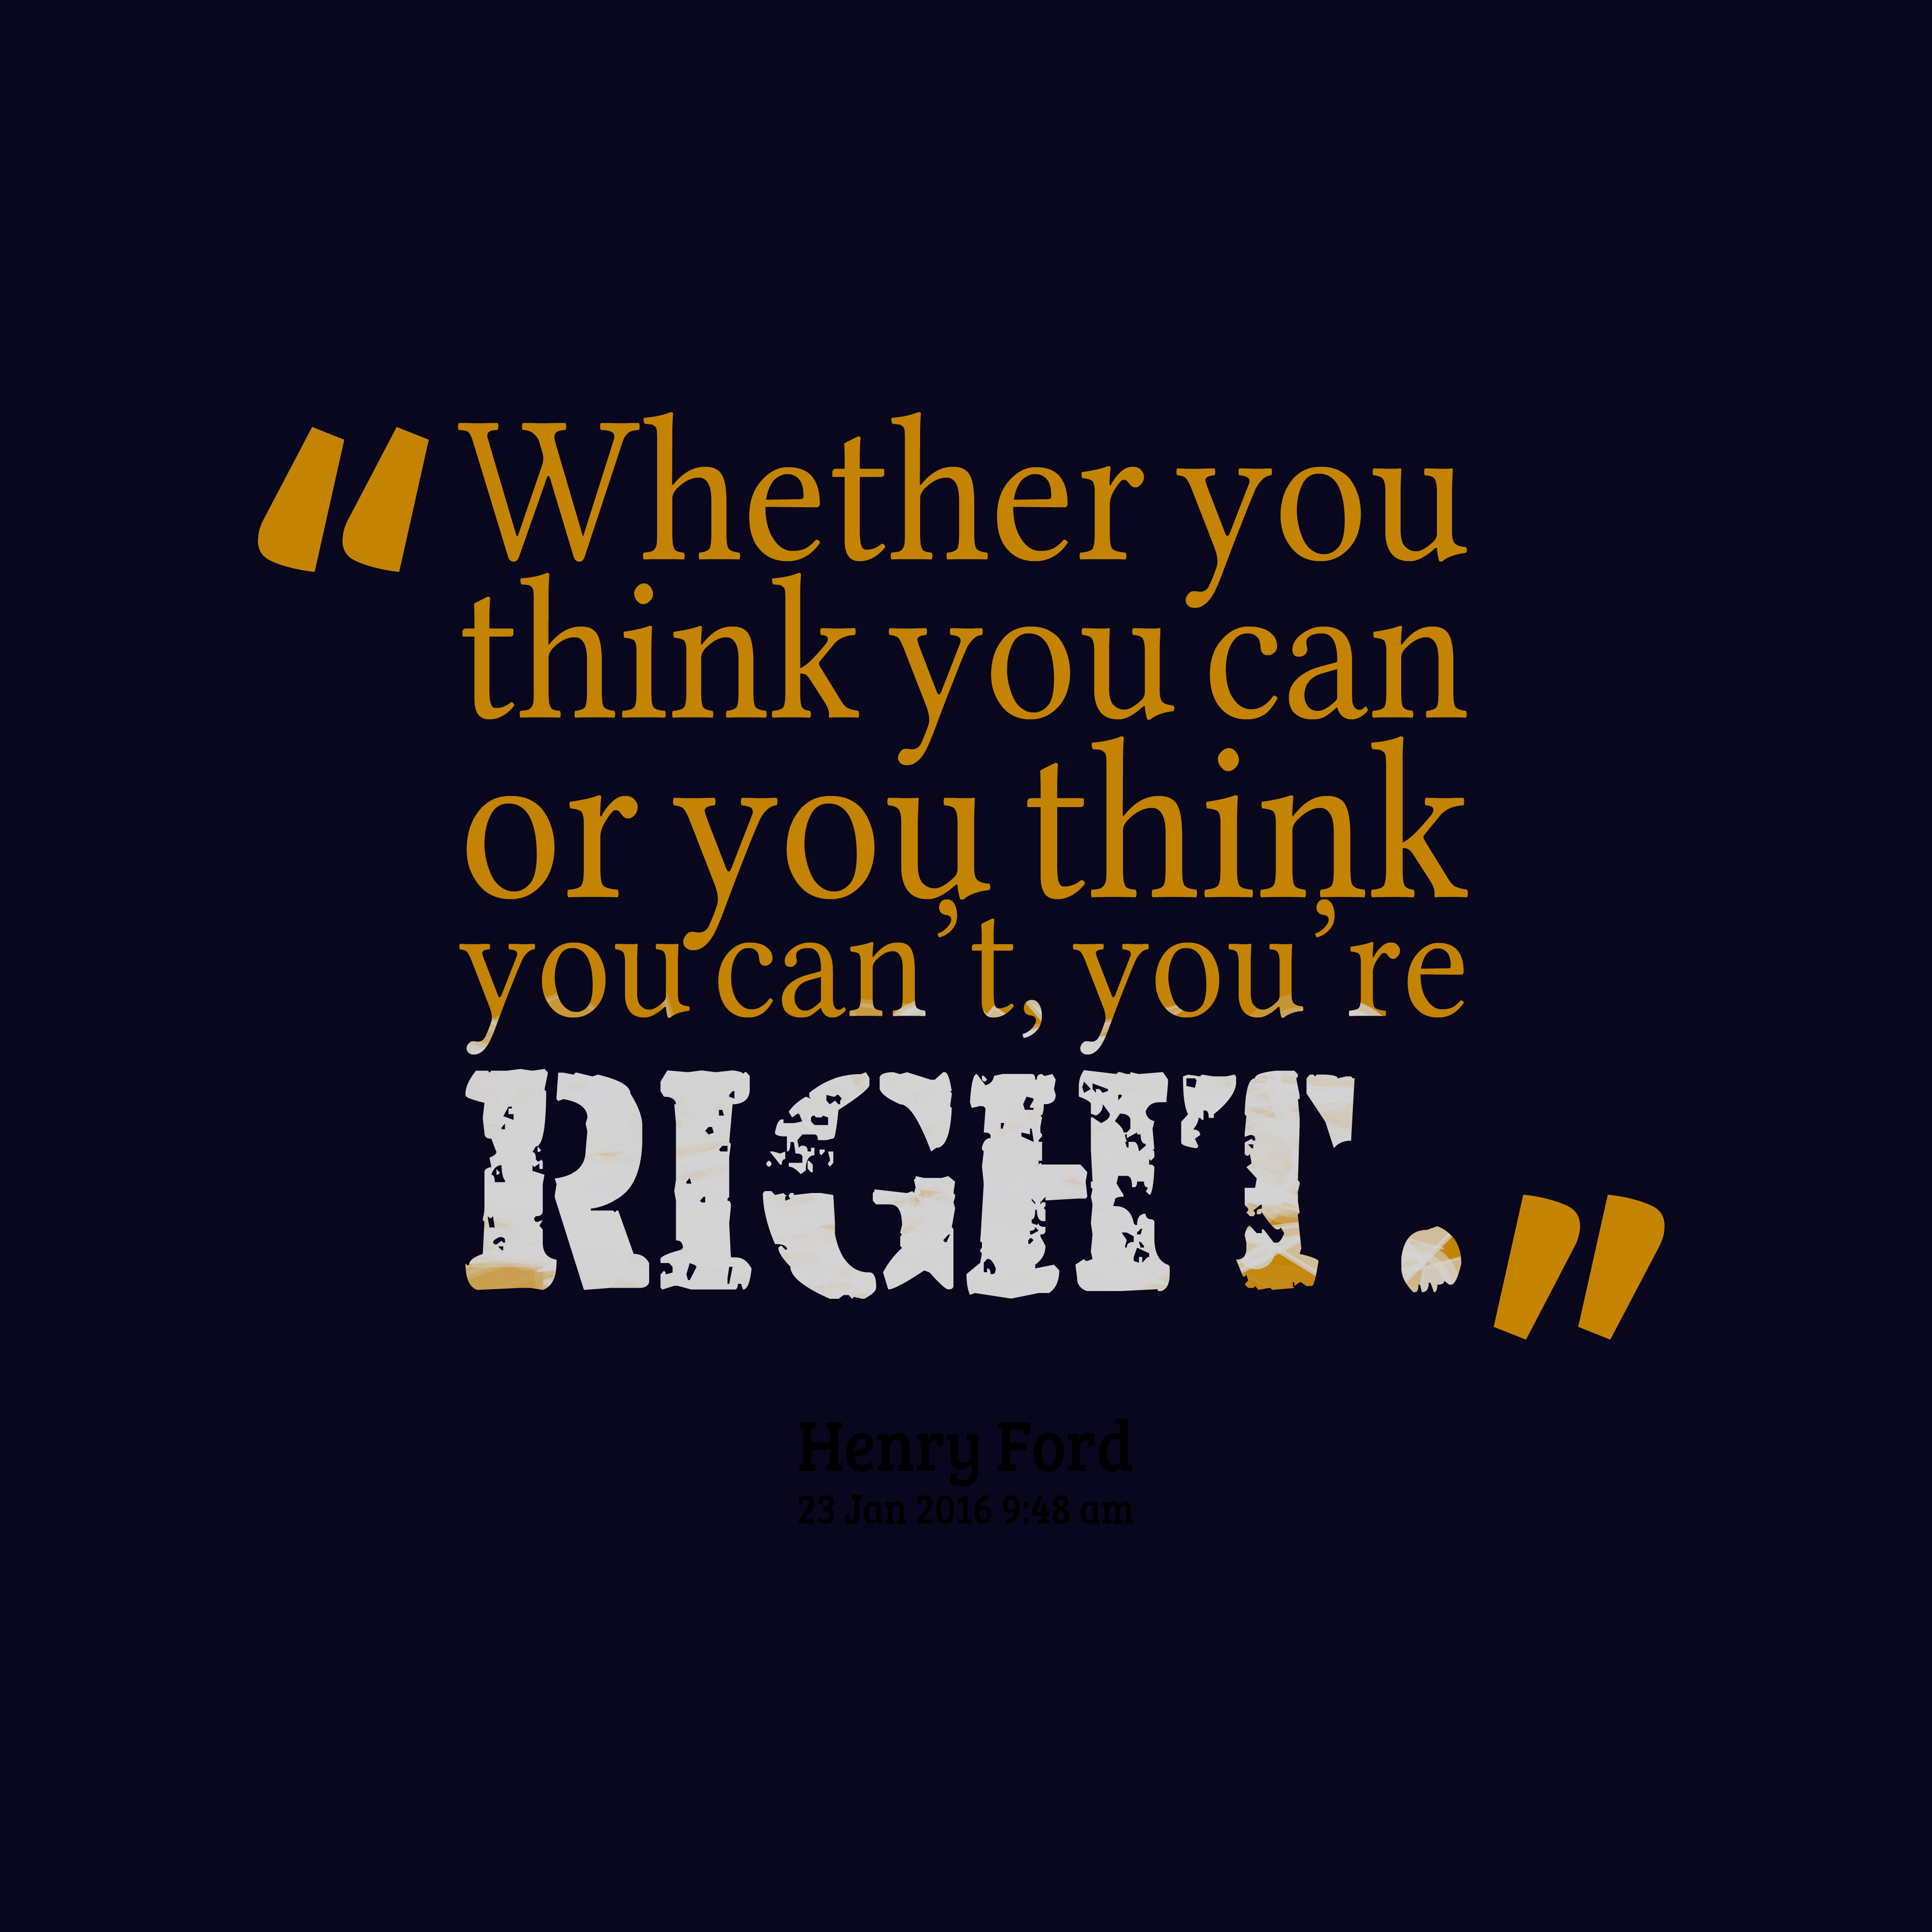 Quotes image of Whether you think you can or you think you can't, you're right.